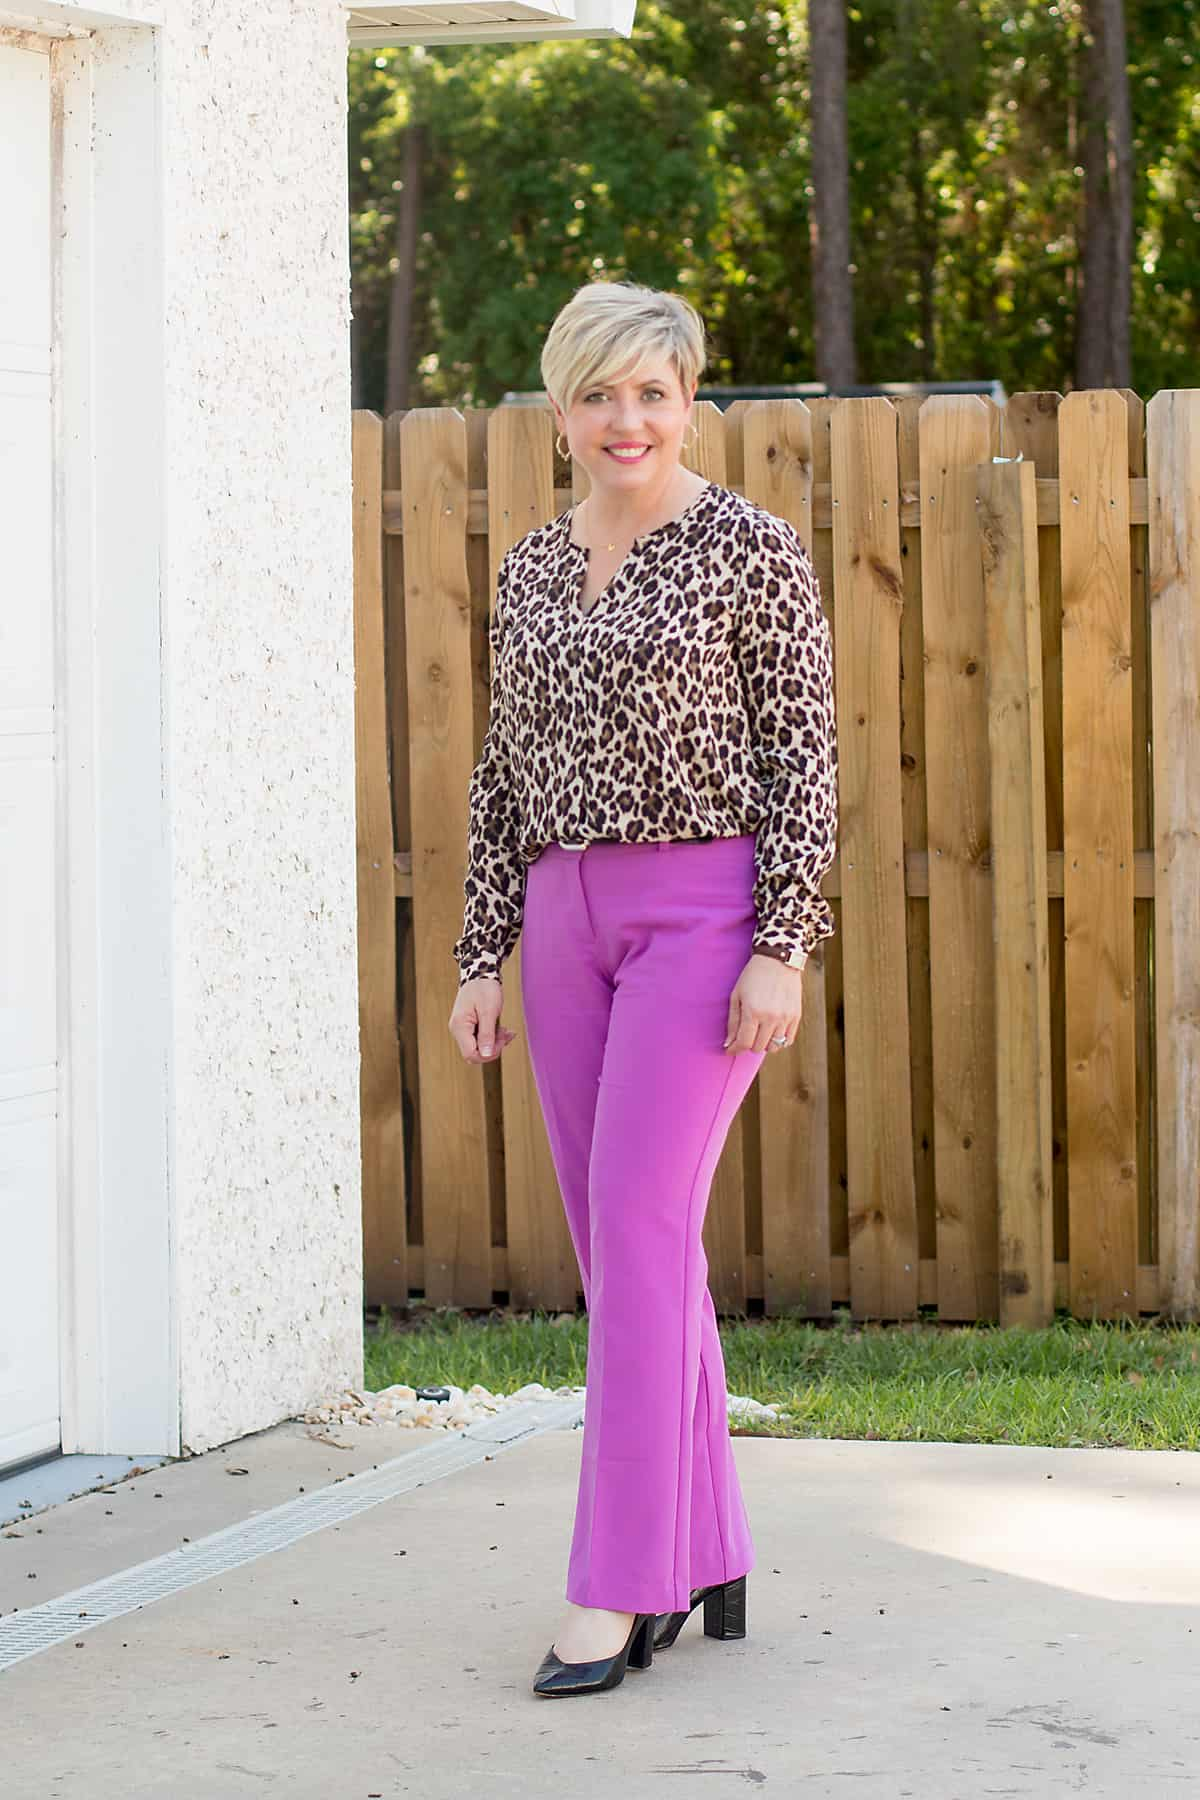 women's office outfit with amethyst orchid pants and leopard print top